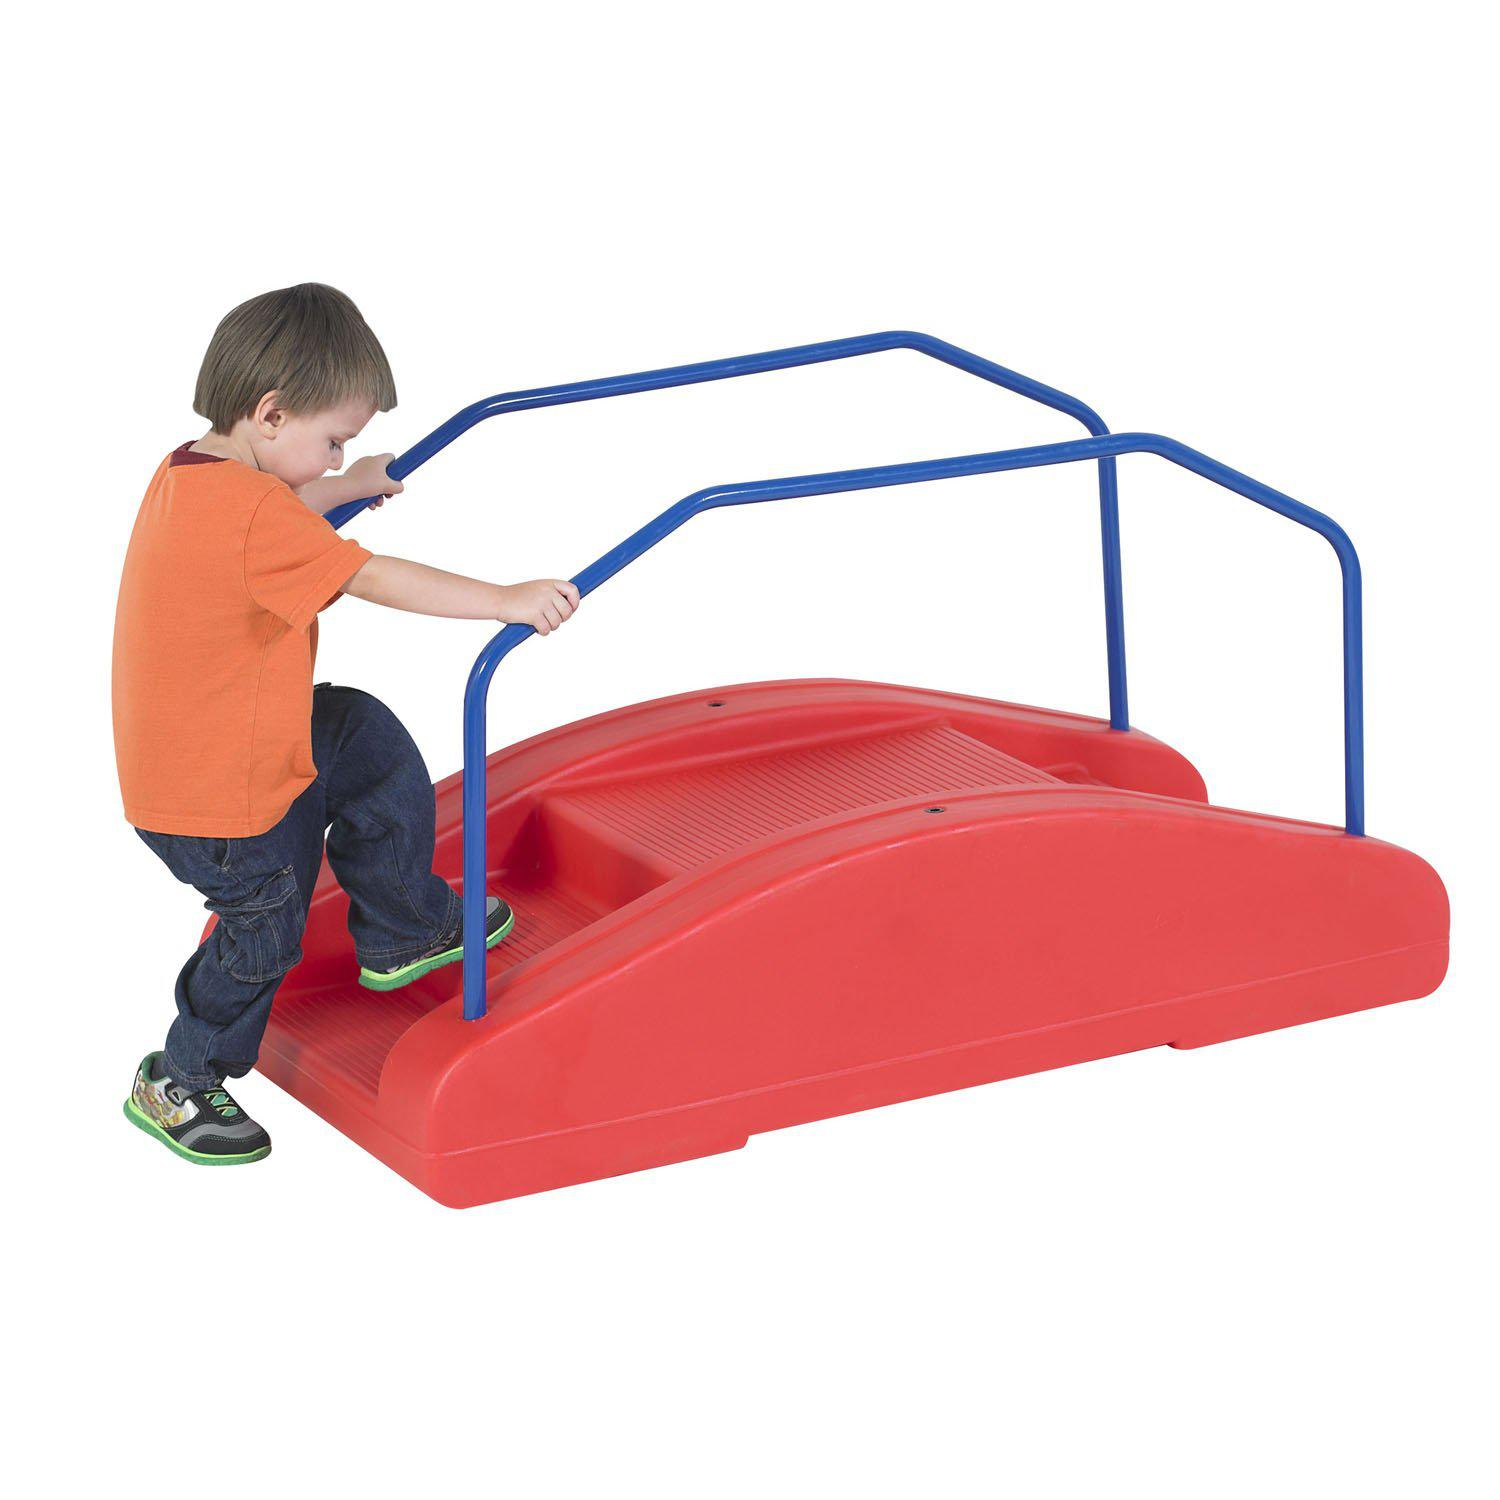 Red Rocker/Toddler Bridge with Rails